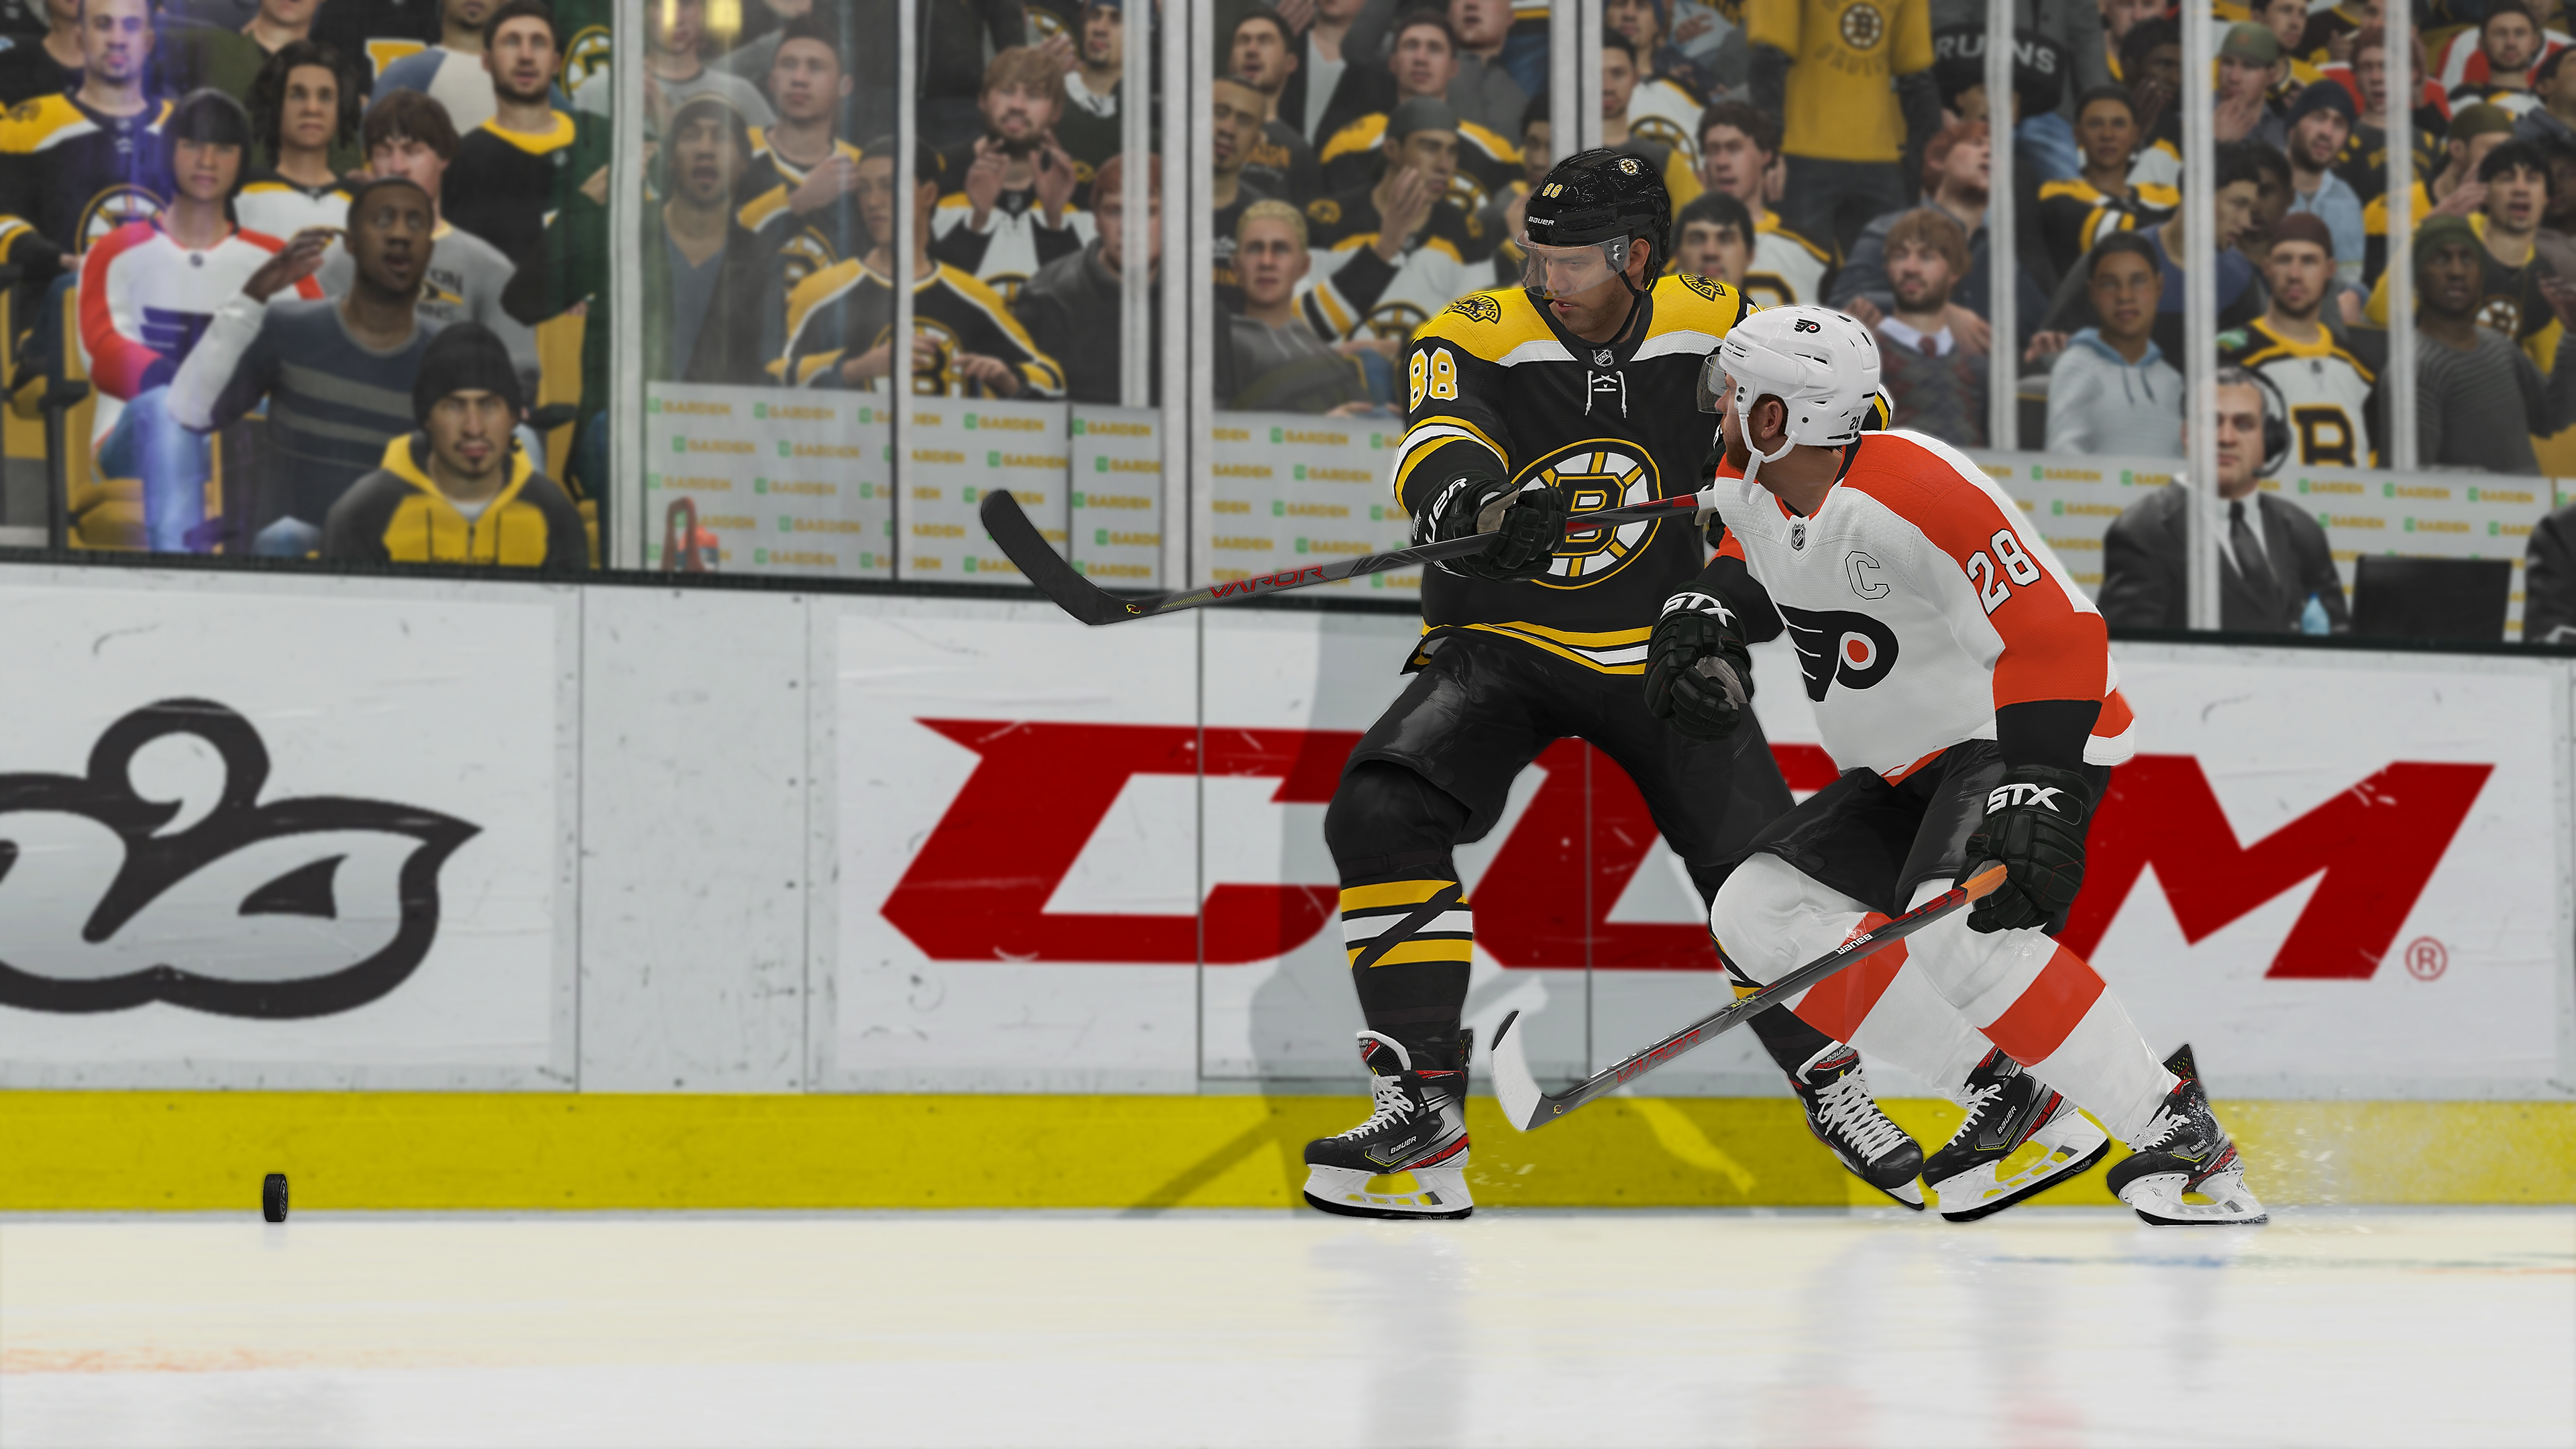 EA SPORTS NHL 21 - Captura de pantalla 2 de la galería